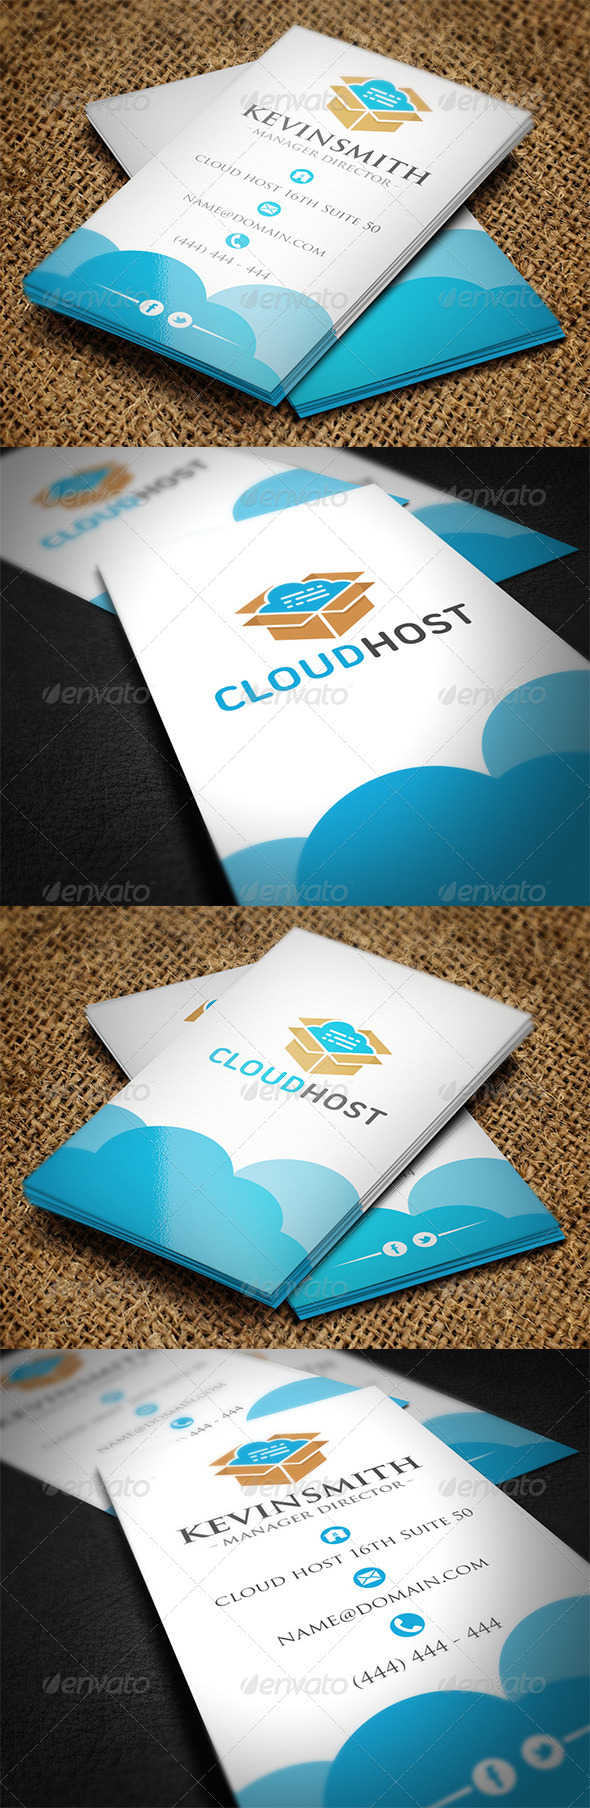 GraphicRiver Cloud Business Card 7164263